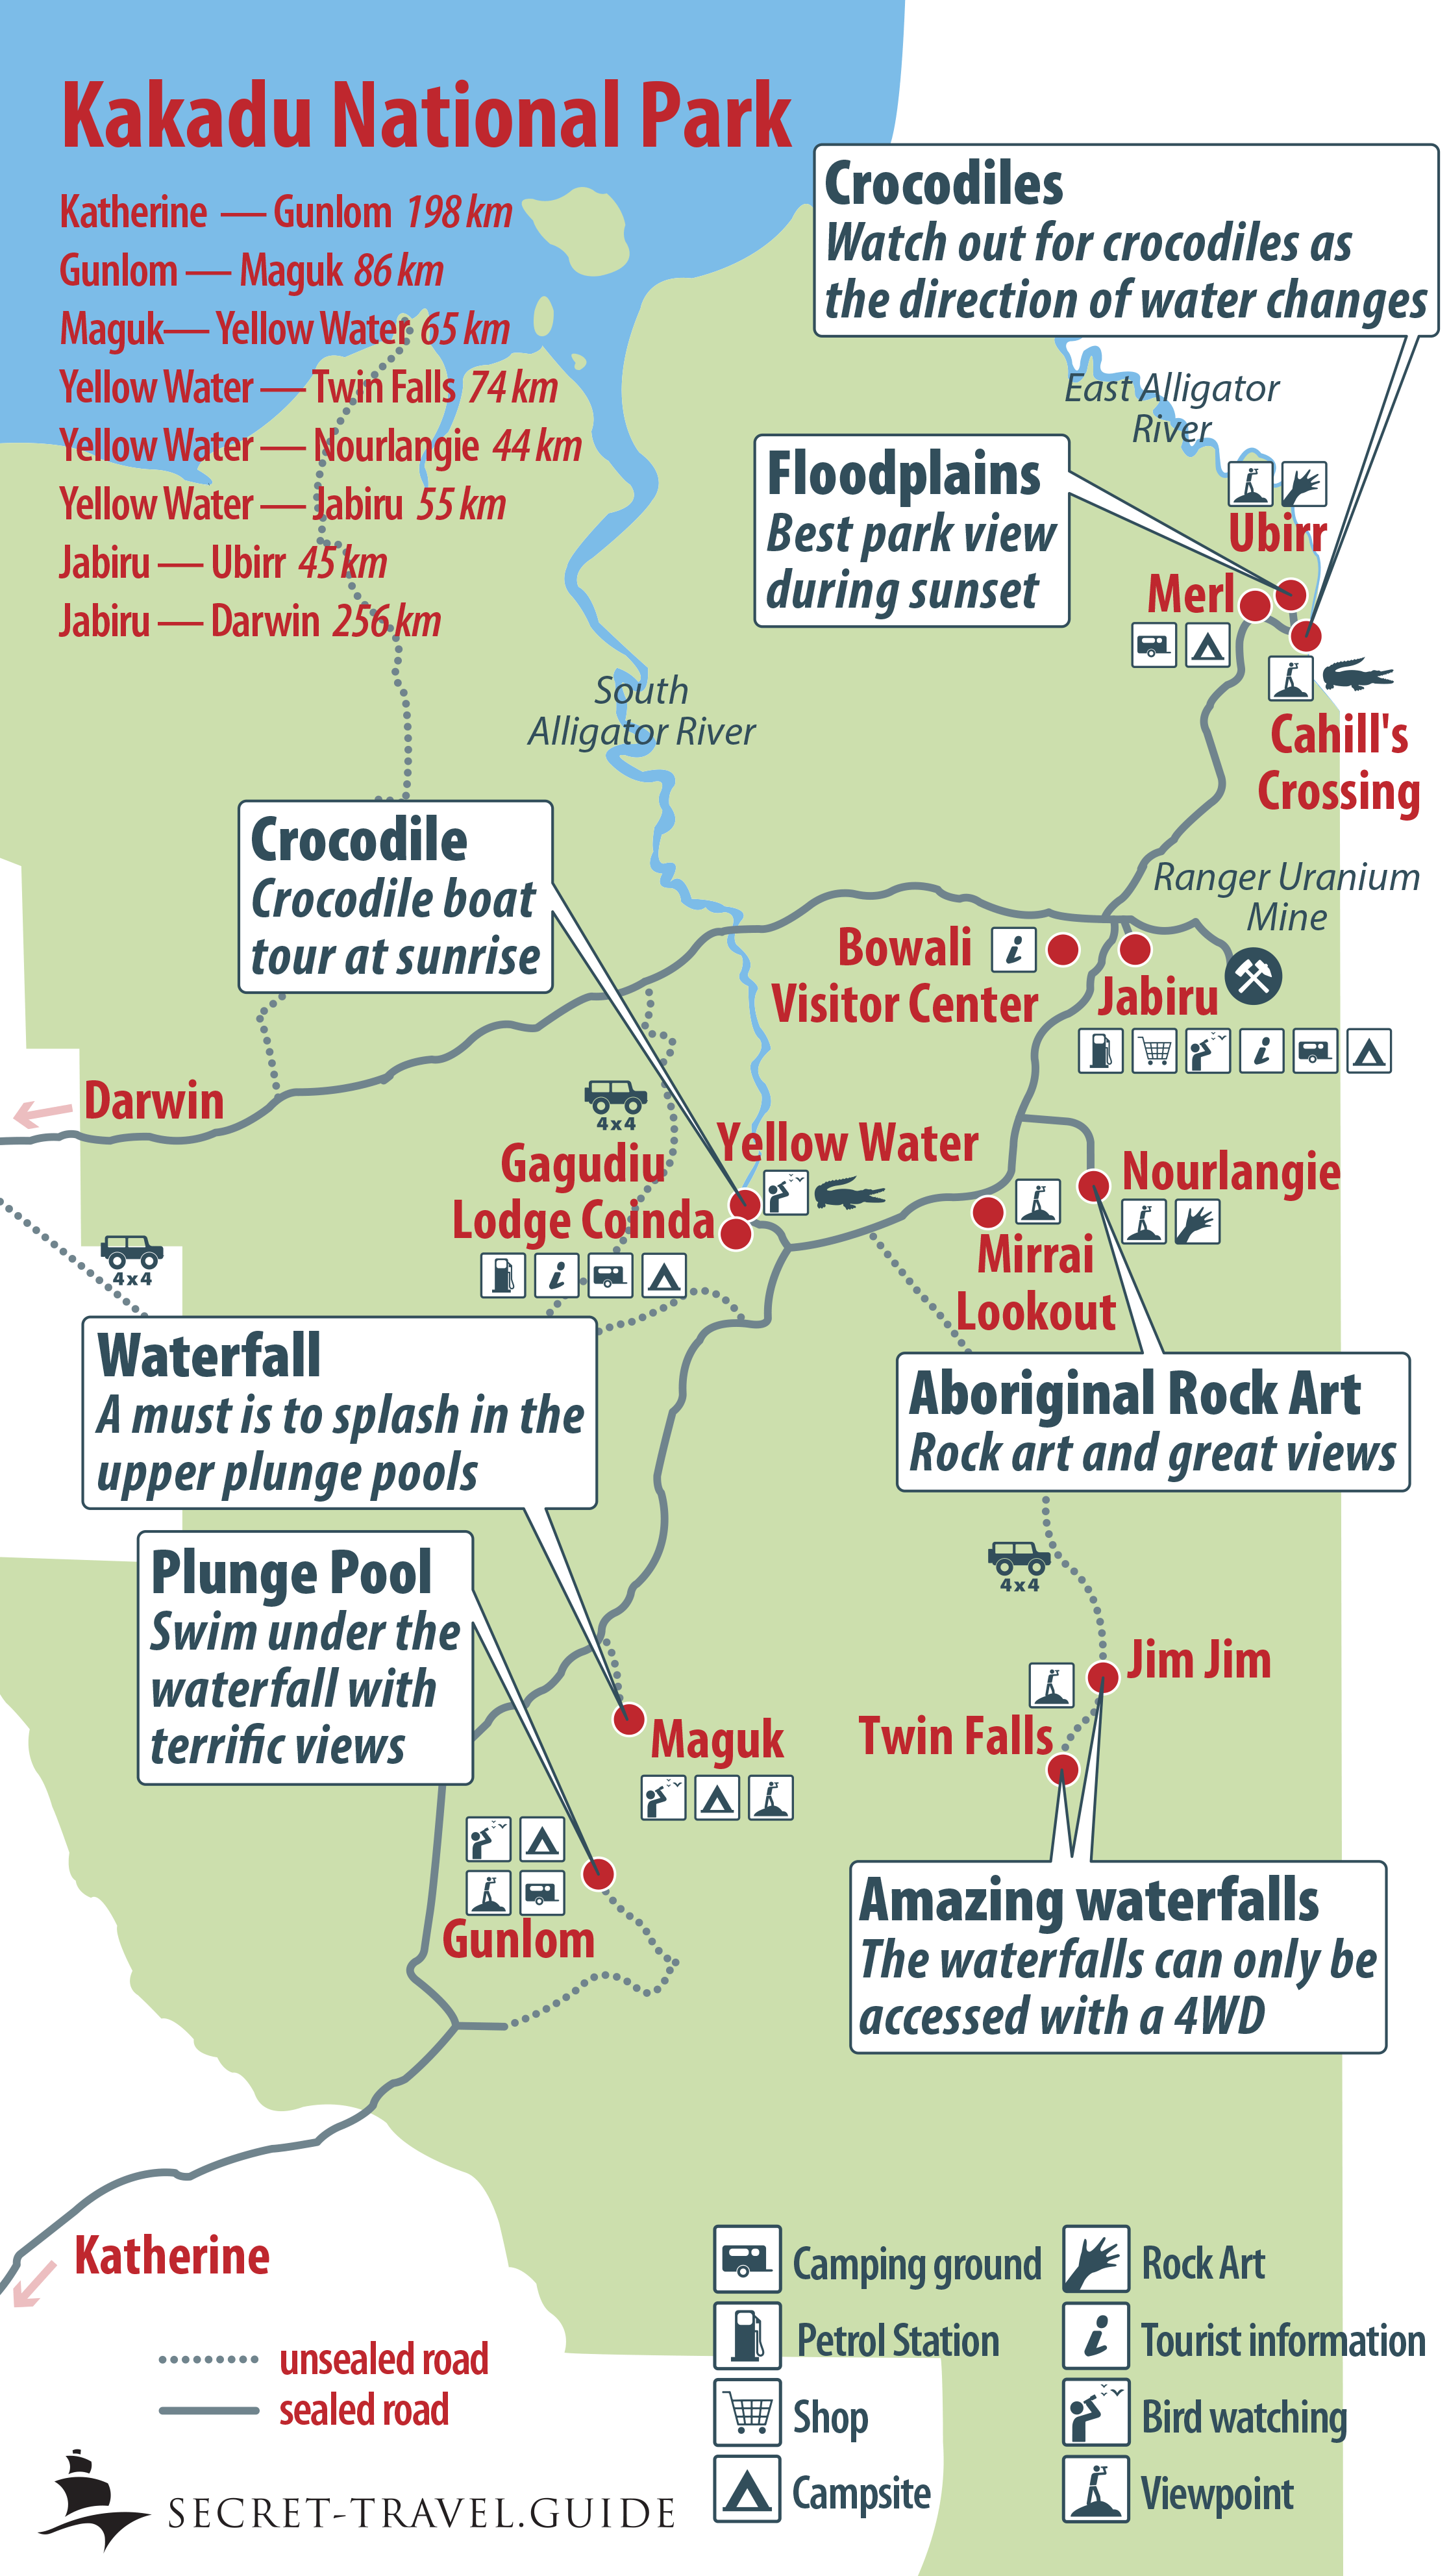 Map Of Australia Kakadu National Park.Guide To Kakadu National Park Australia Secret Travel Guide